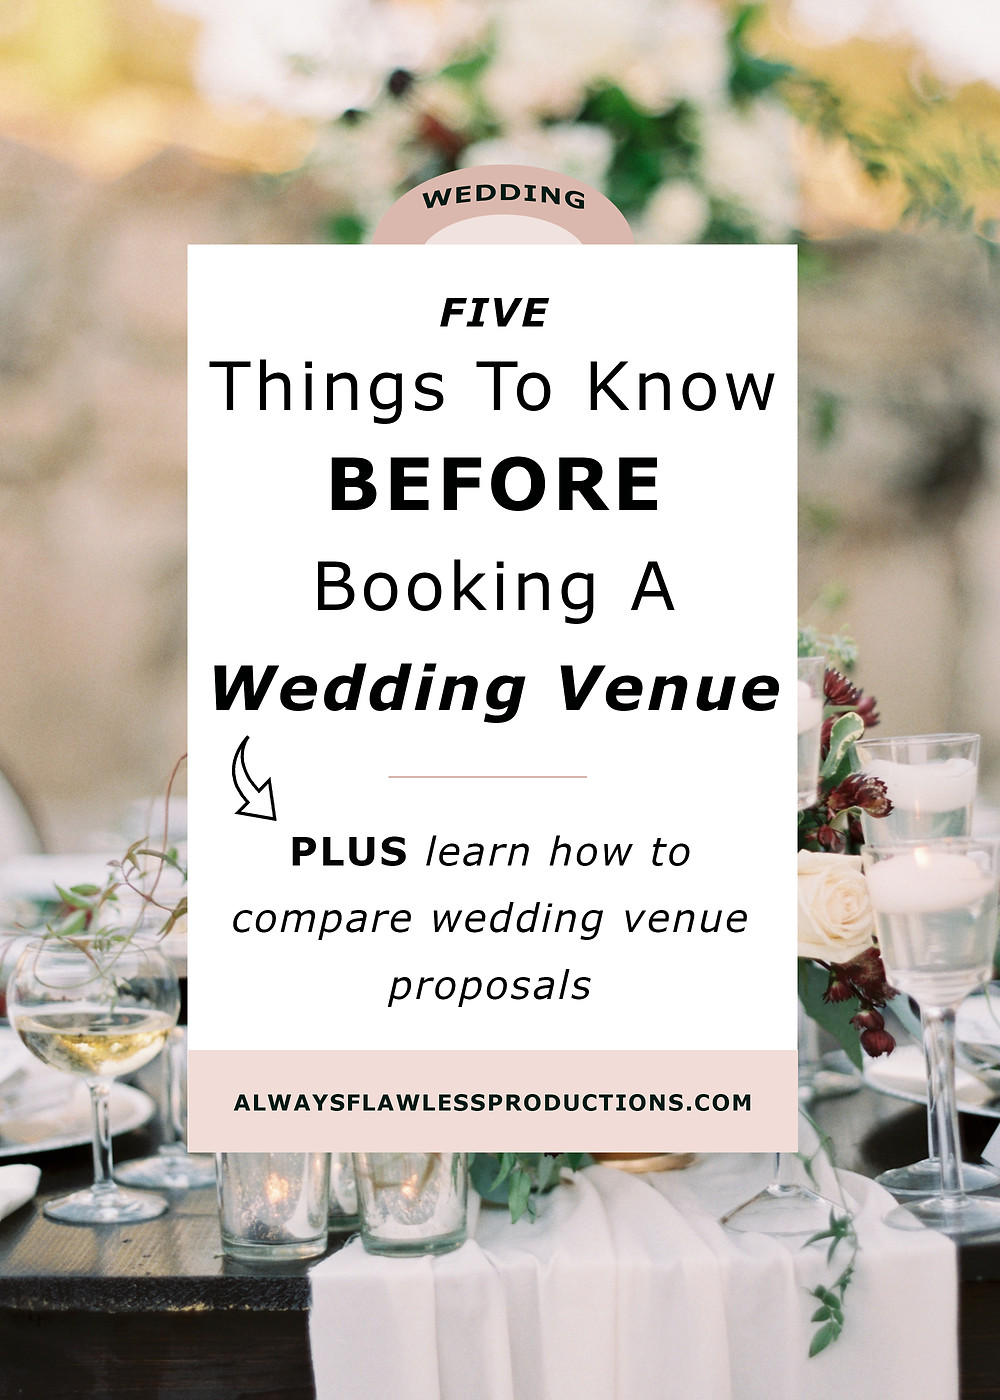 Affordable Wedding Venues: 5 Things To Know Before Booking A Wedding Venue